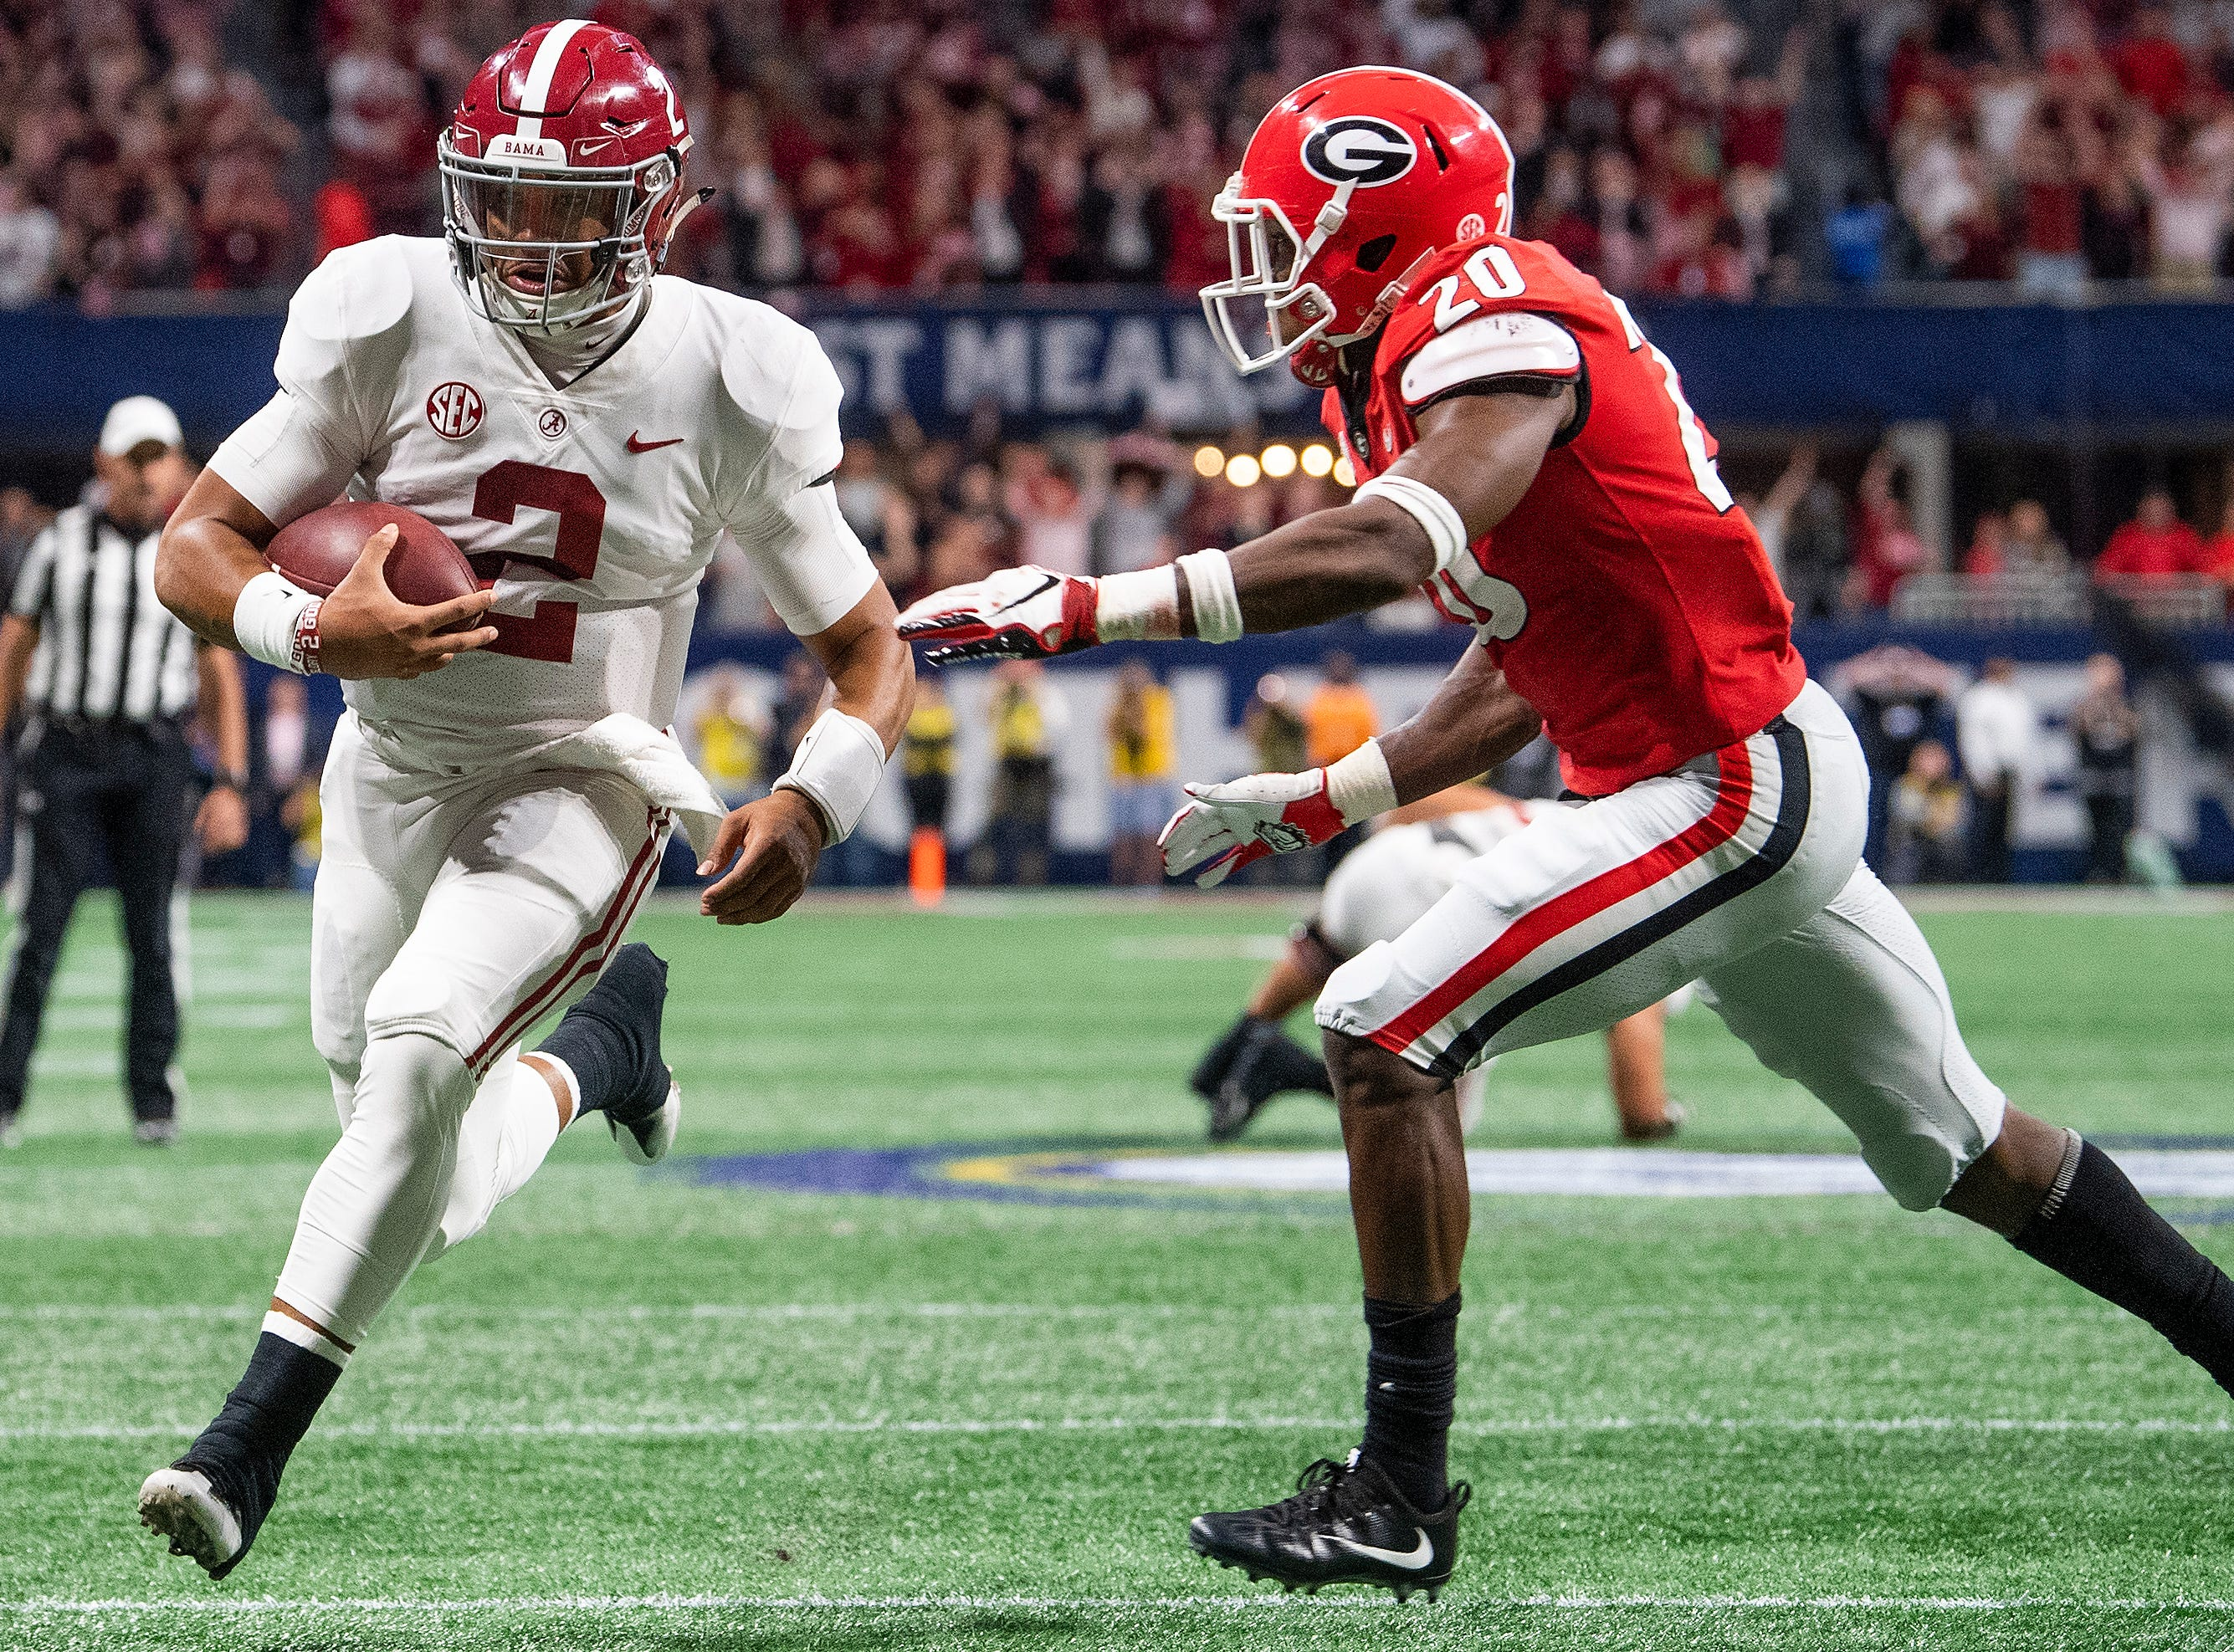 Alabama quarterback Jalen Hurts (2) scores the go ahead touchdown against Georgia defensive back J.R. Reed (20) in the SEC Championship Game at Mercedes Benz Stadium in Atlanta, Ga., on Saturday December 1, 2018.